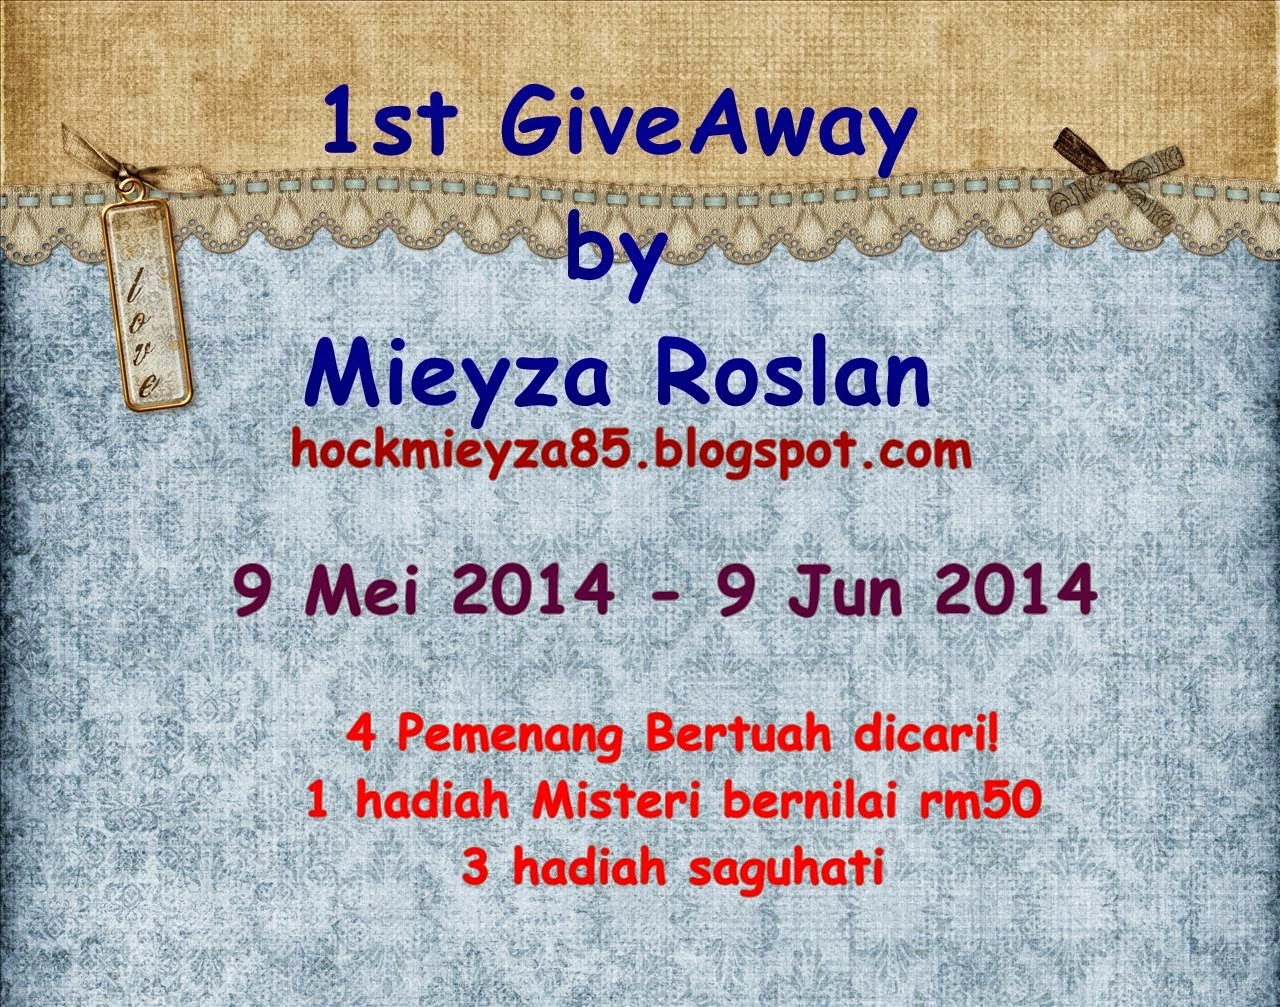 http://hockmieyza85.blogspot.com/2014/05/1st-give-away-by-mieyza-roslan.html